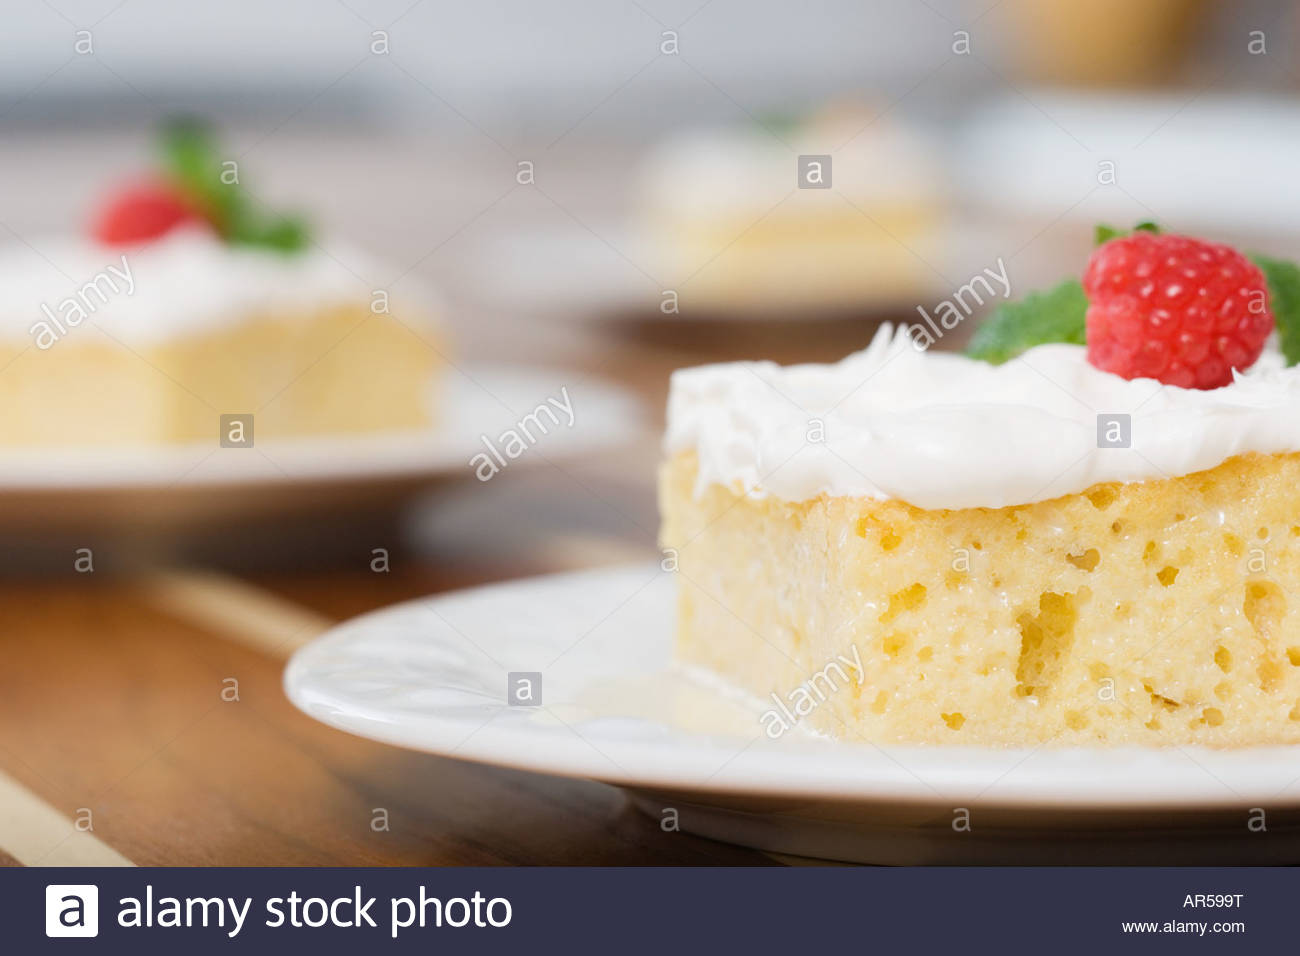 Slices of cake - Stock Image